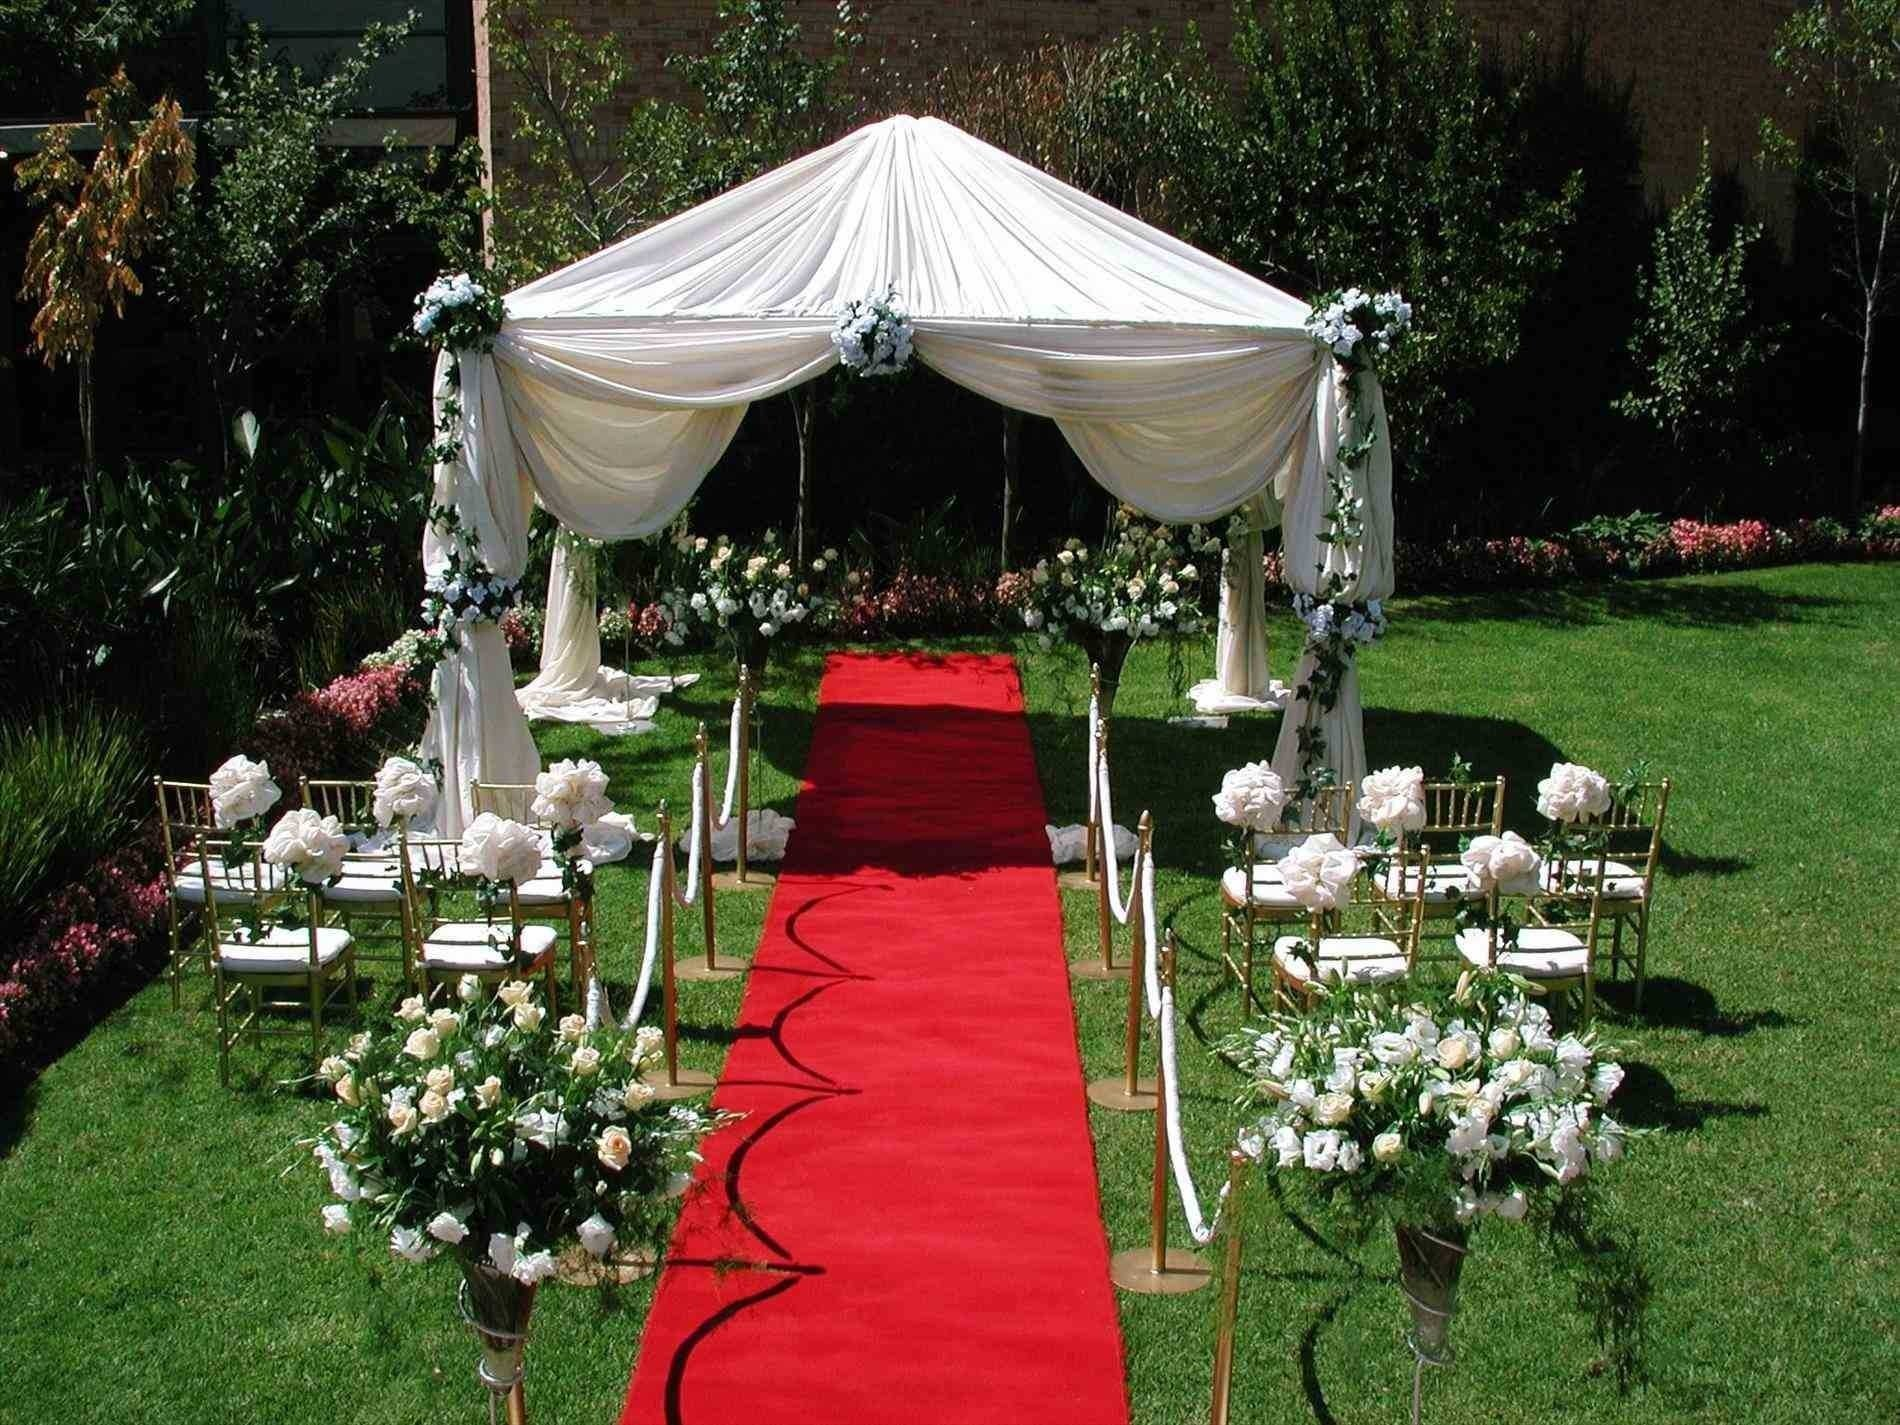 10 Fantastic Small Backyard Wedding Ideas On A Budget awesome small backyard wedding ideas collection with on budget of